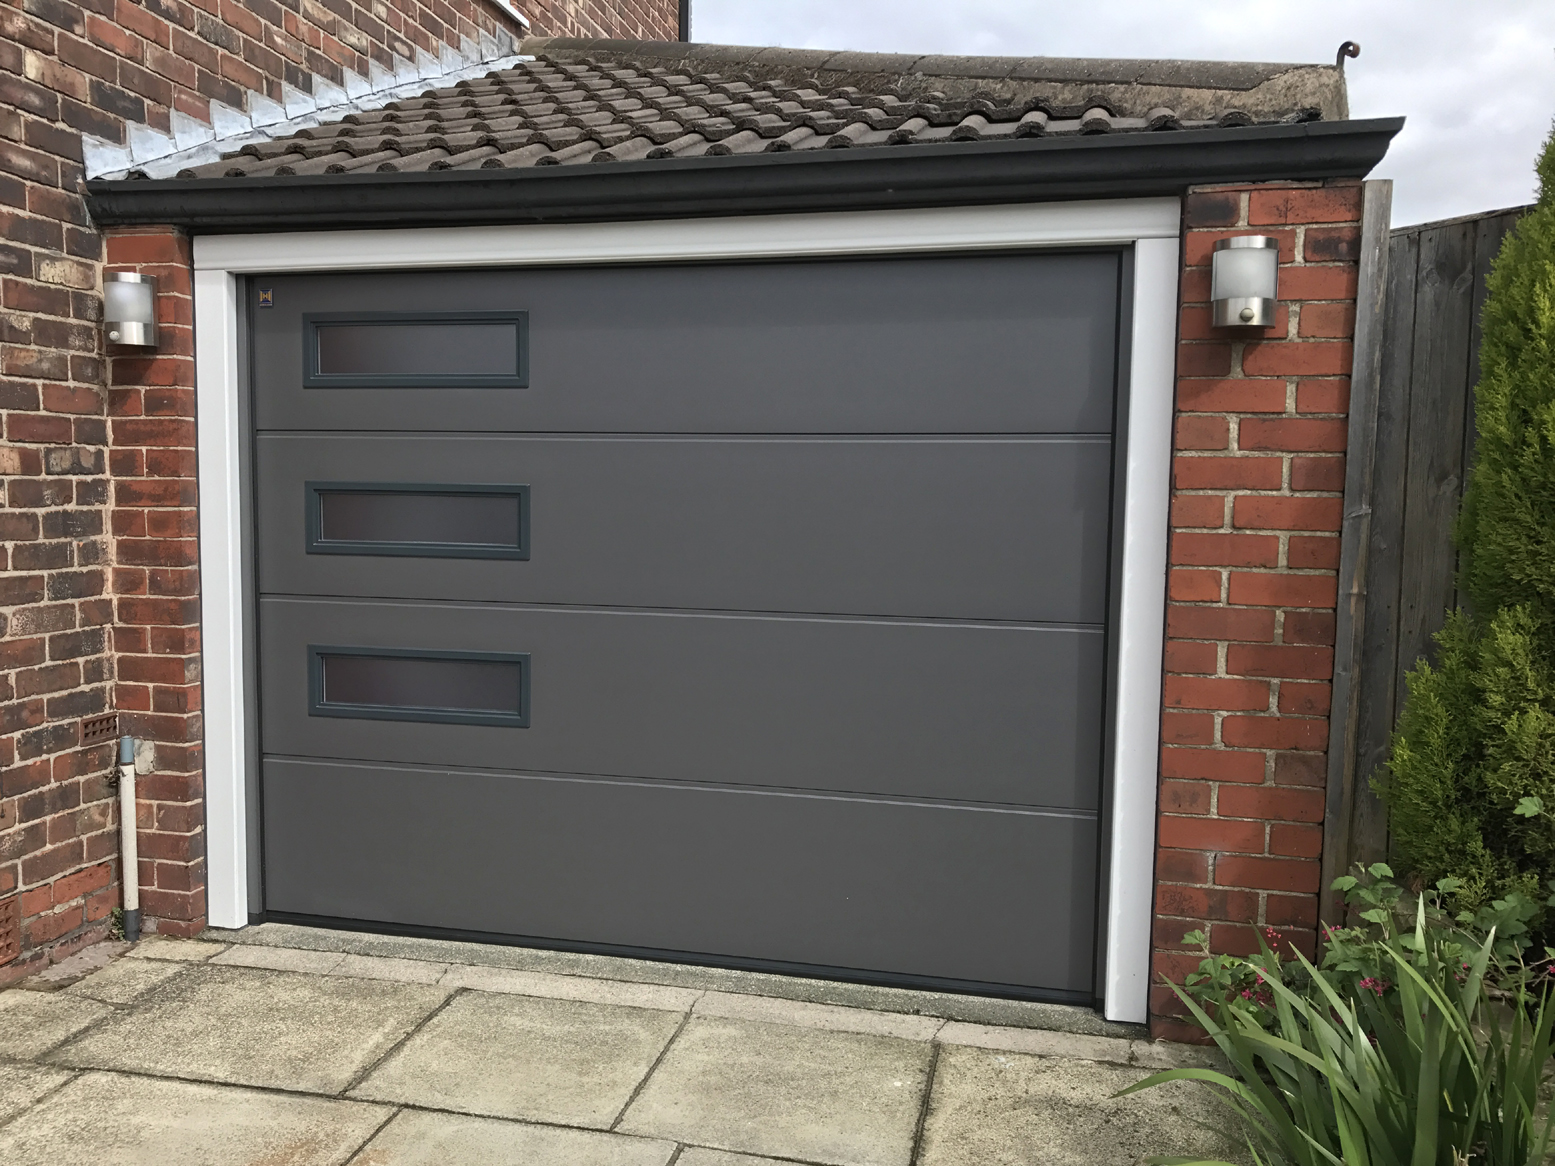 Hormann sectional garage door denton pennine garage doors for 16 x 21 garage door panels